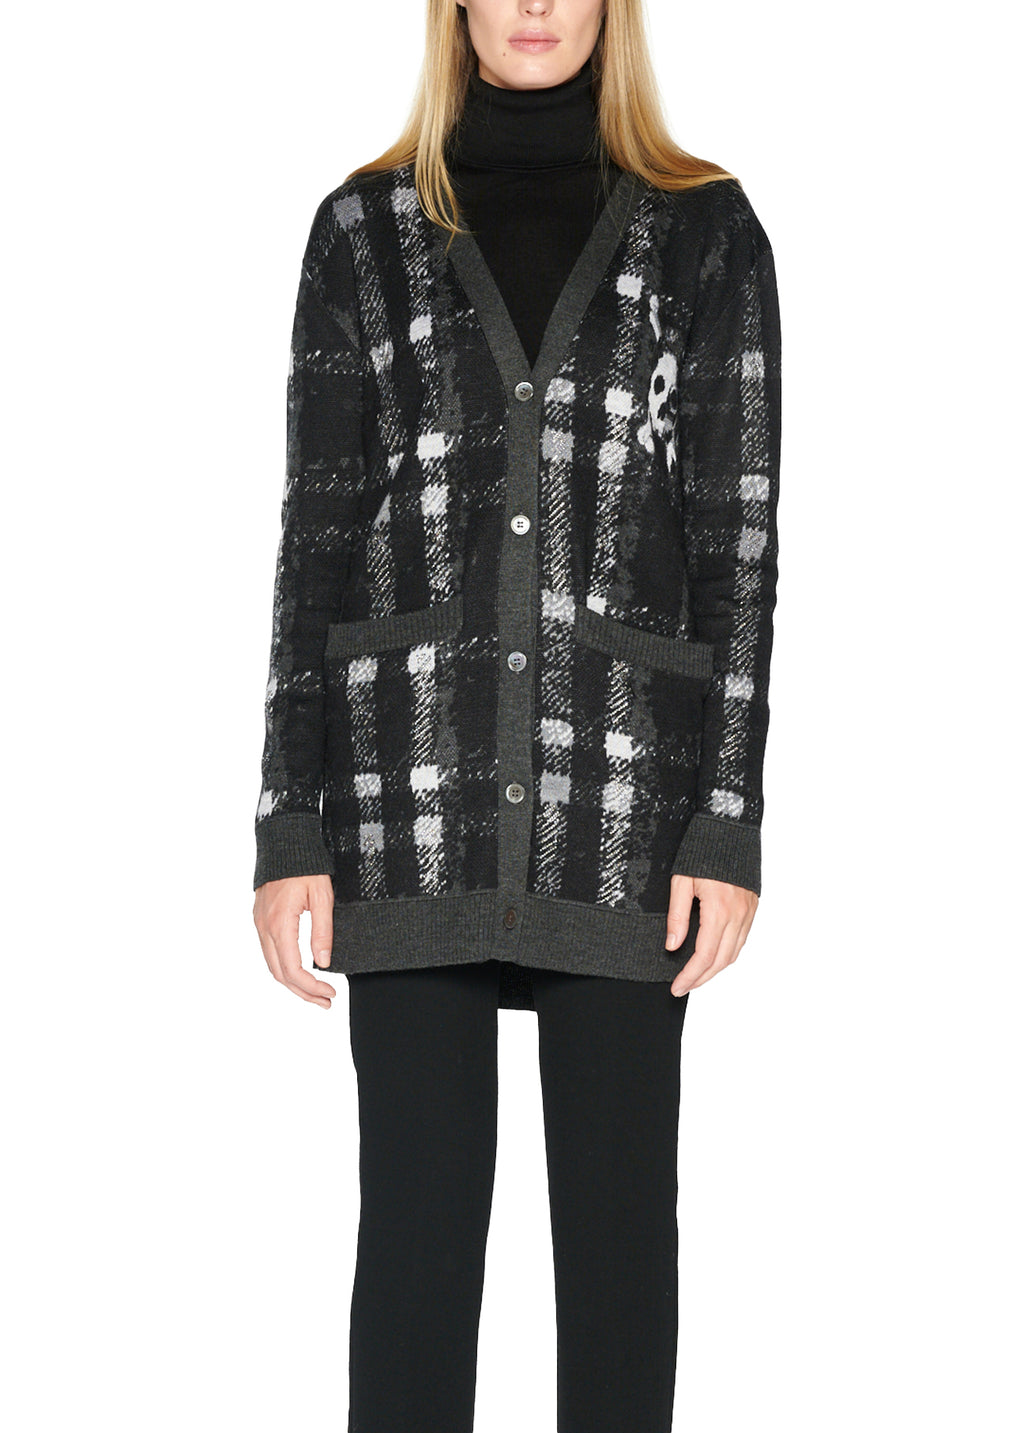 'Libertine till The End' Cashmere Cardigan - Women's Knits - Libertine